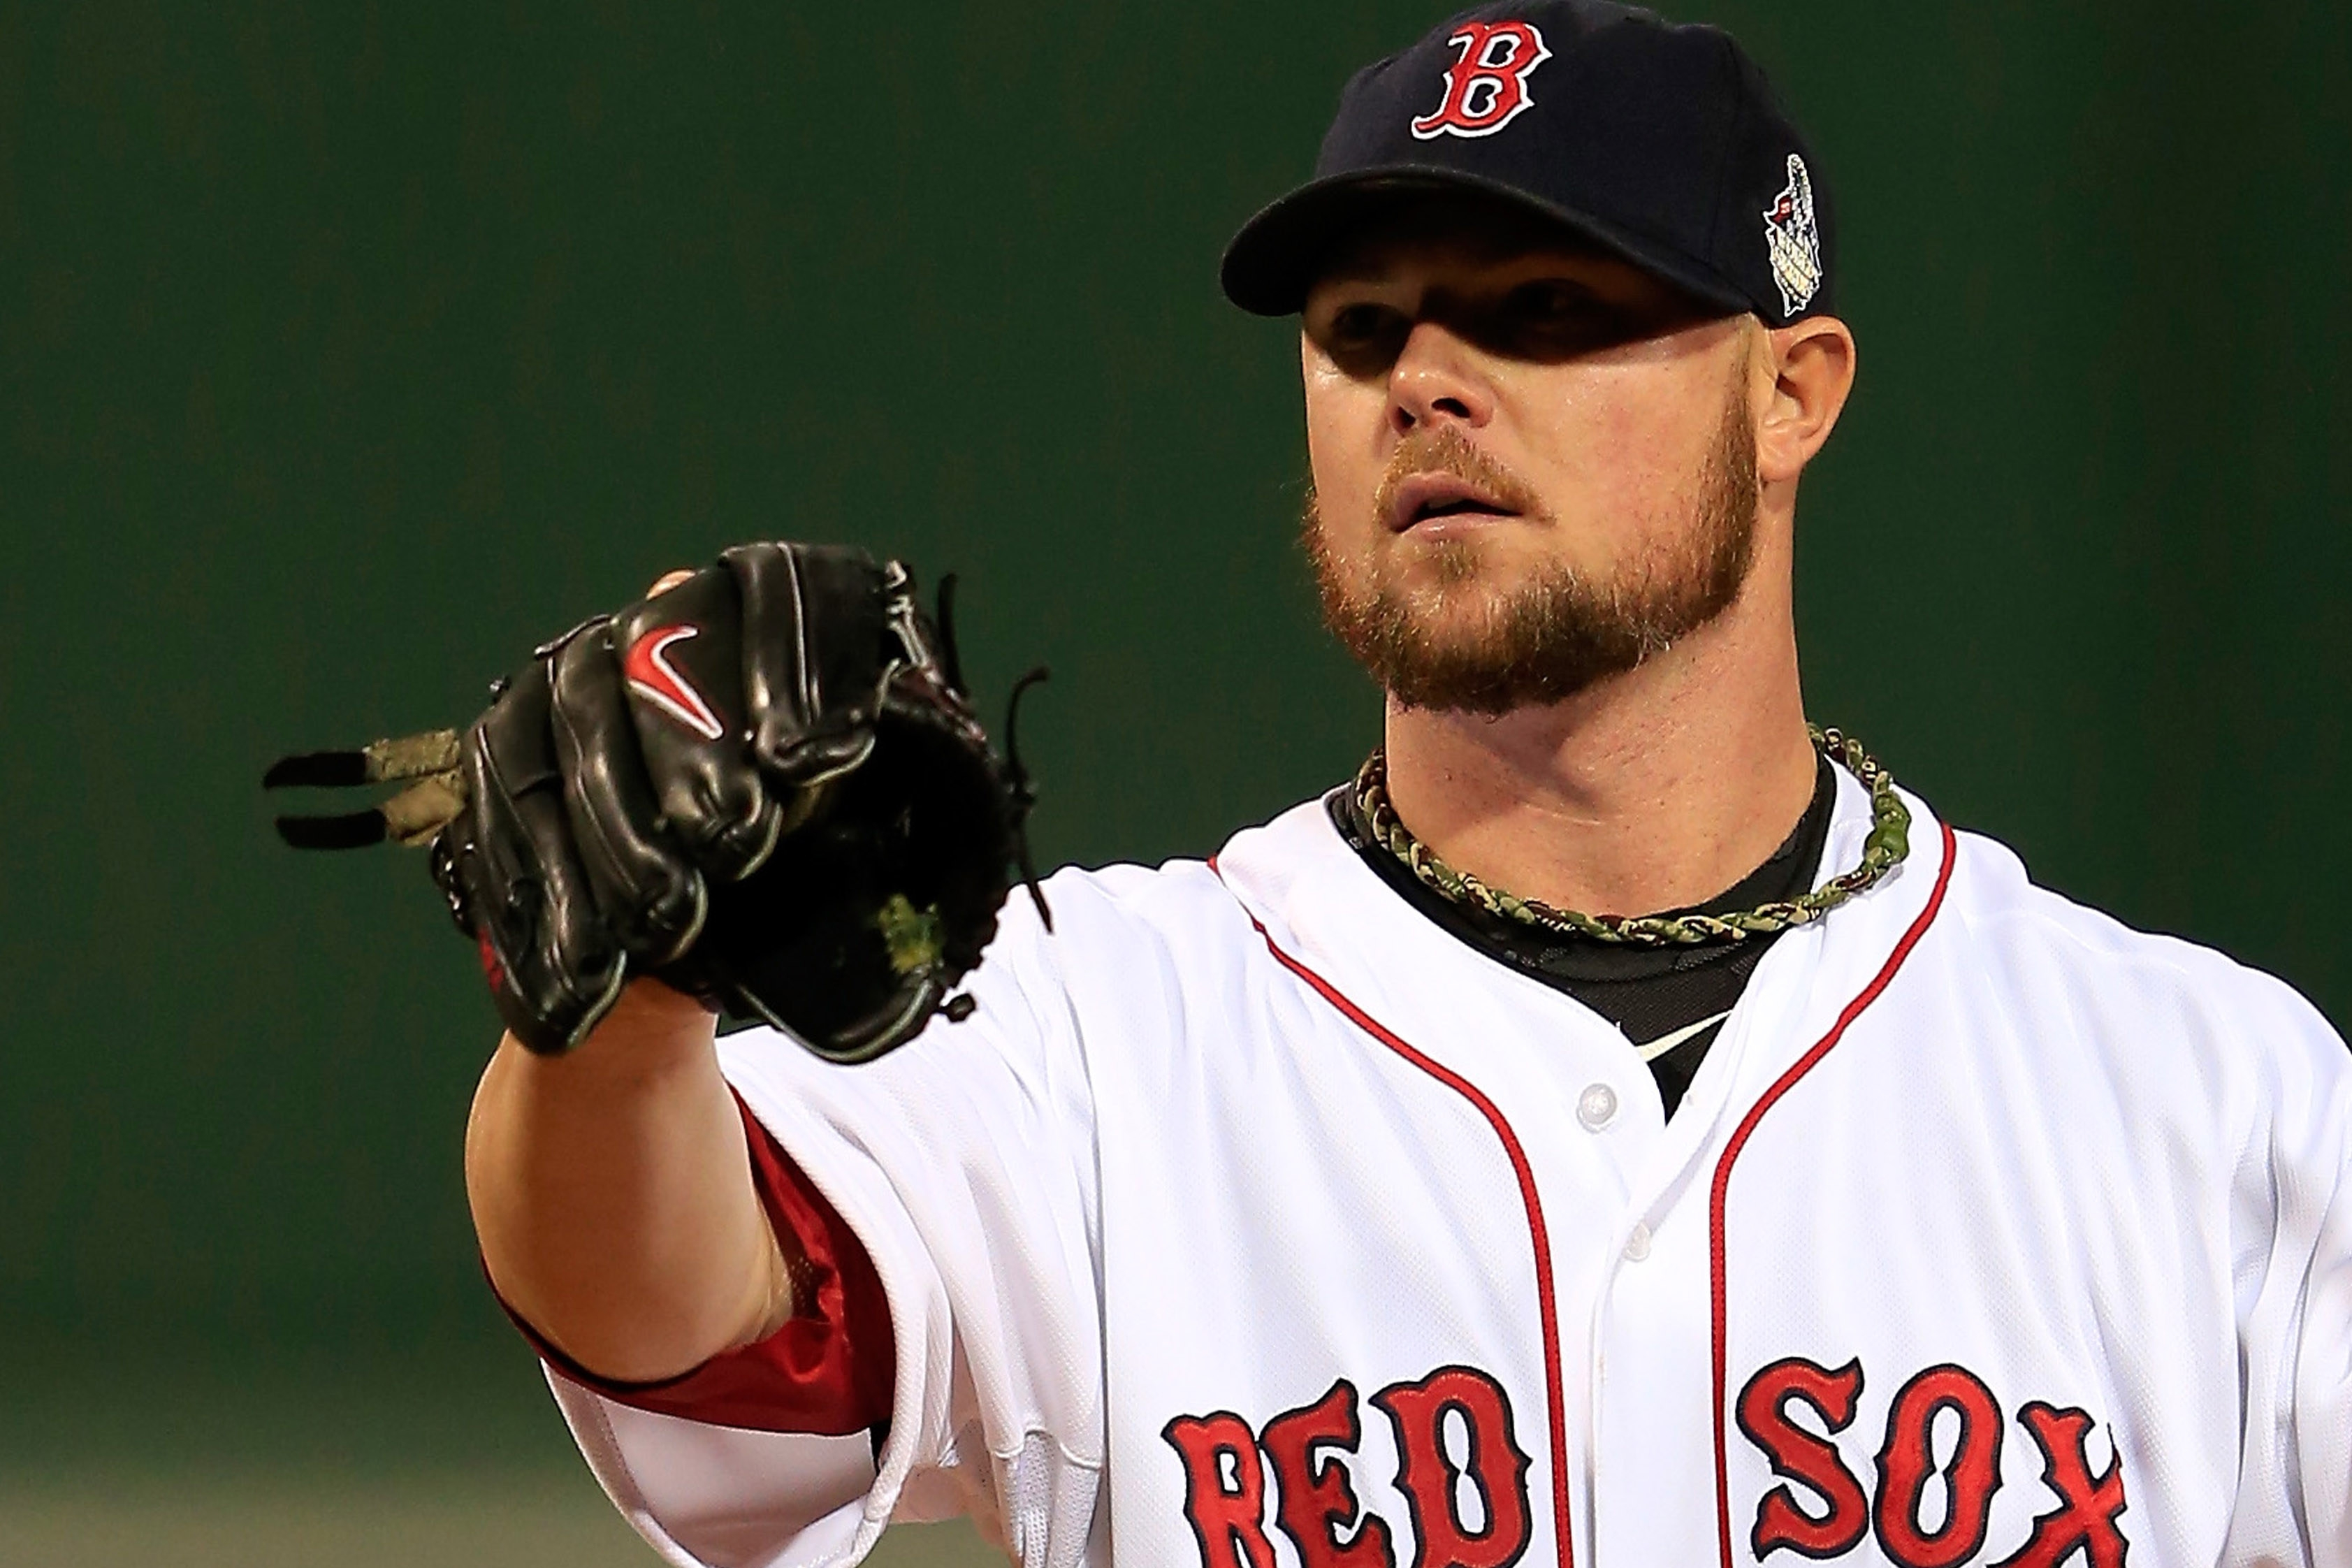 Red Sox pitcher Jon Lester says rosin is the only substance he had on his glove in Game One on Wednesday.